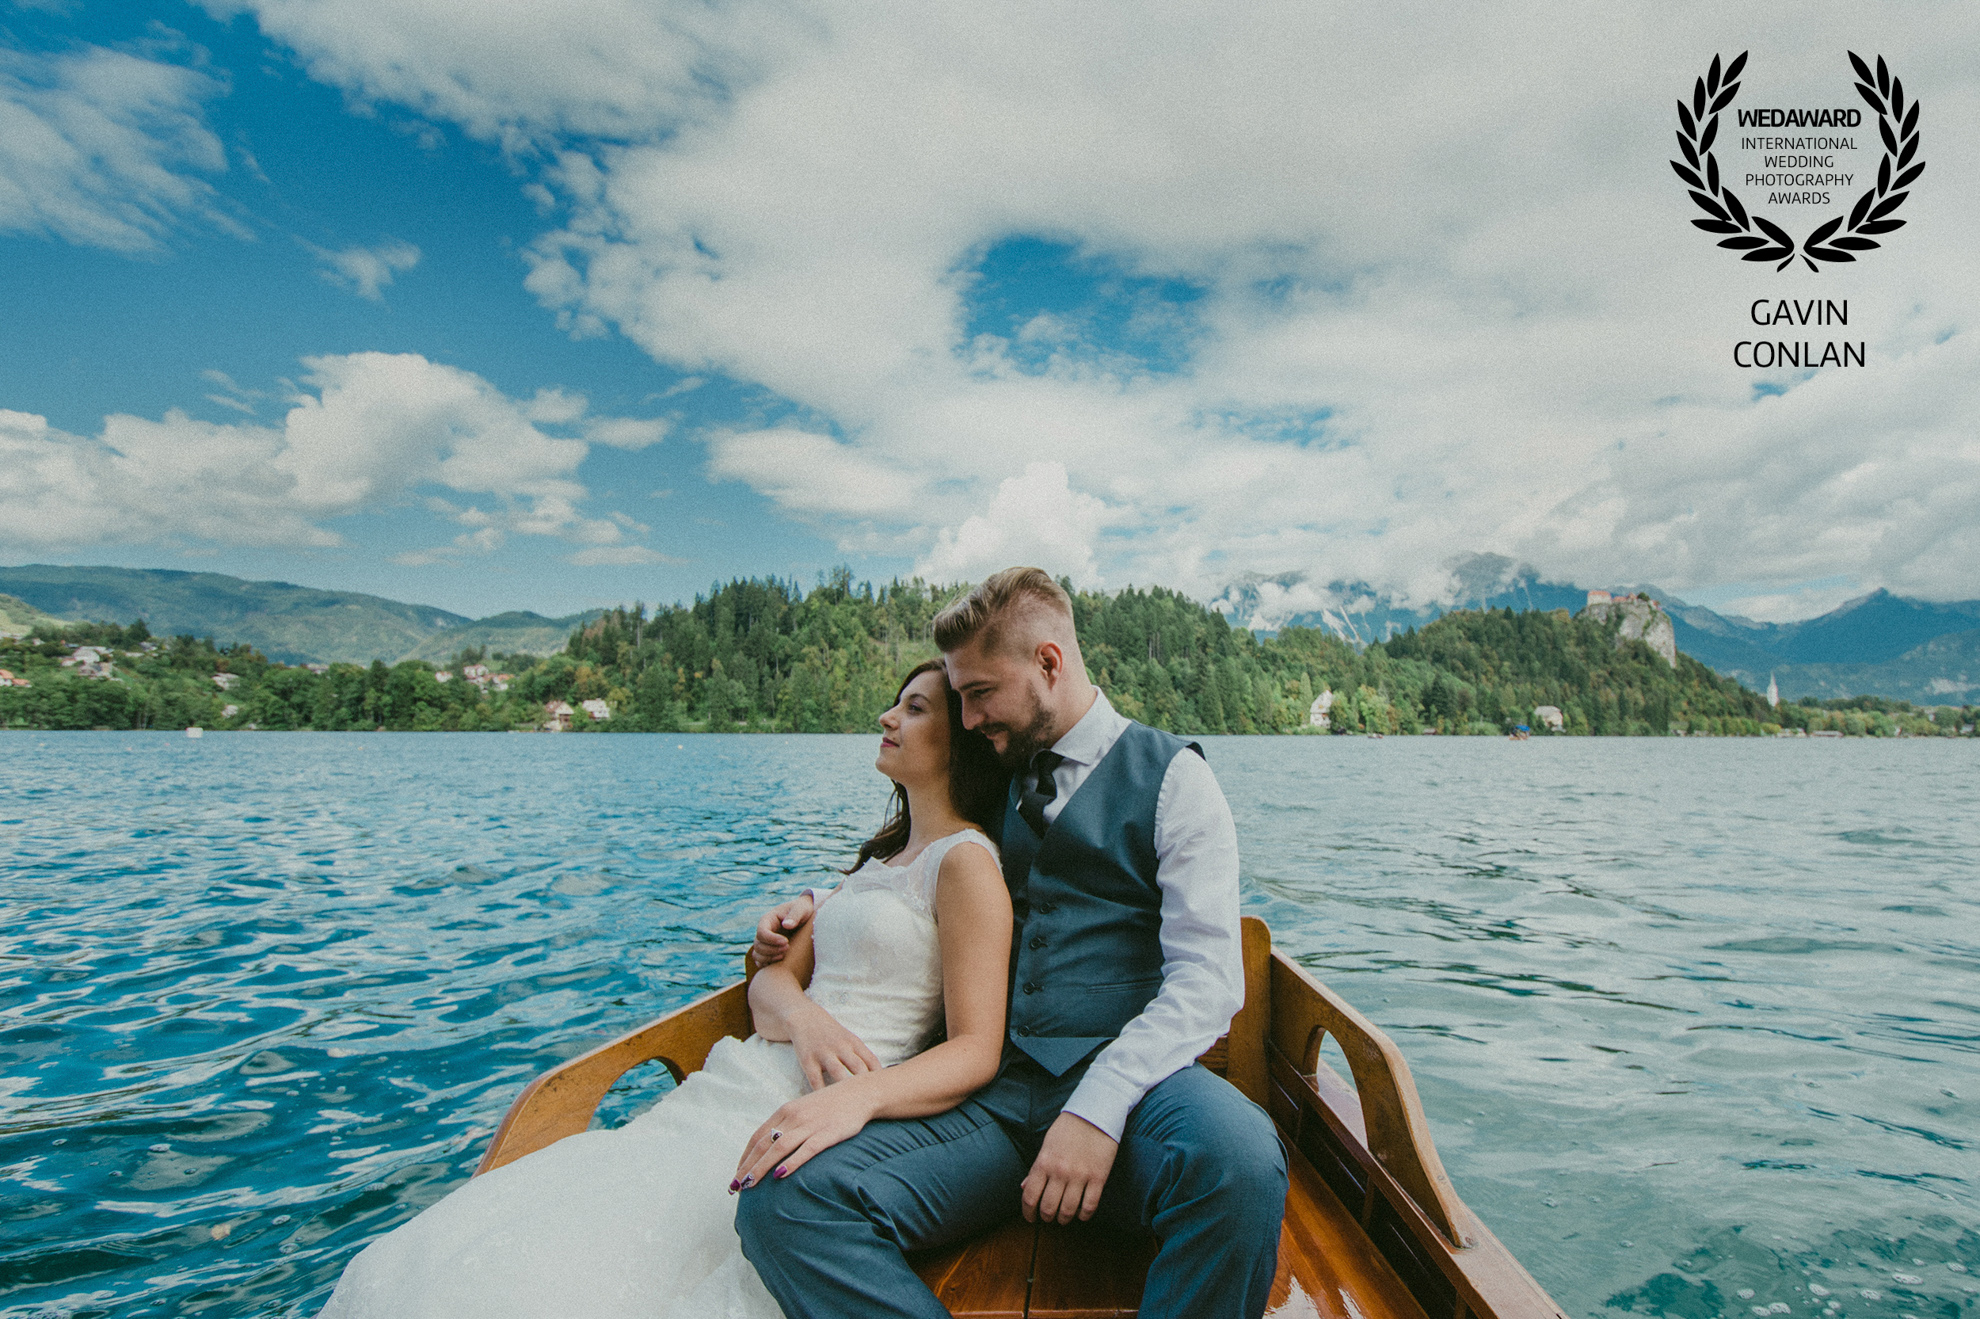 destination-wedding-portrait-lake-bled-slovenia-gavin-conlan-photography-wedaward